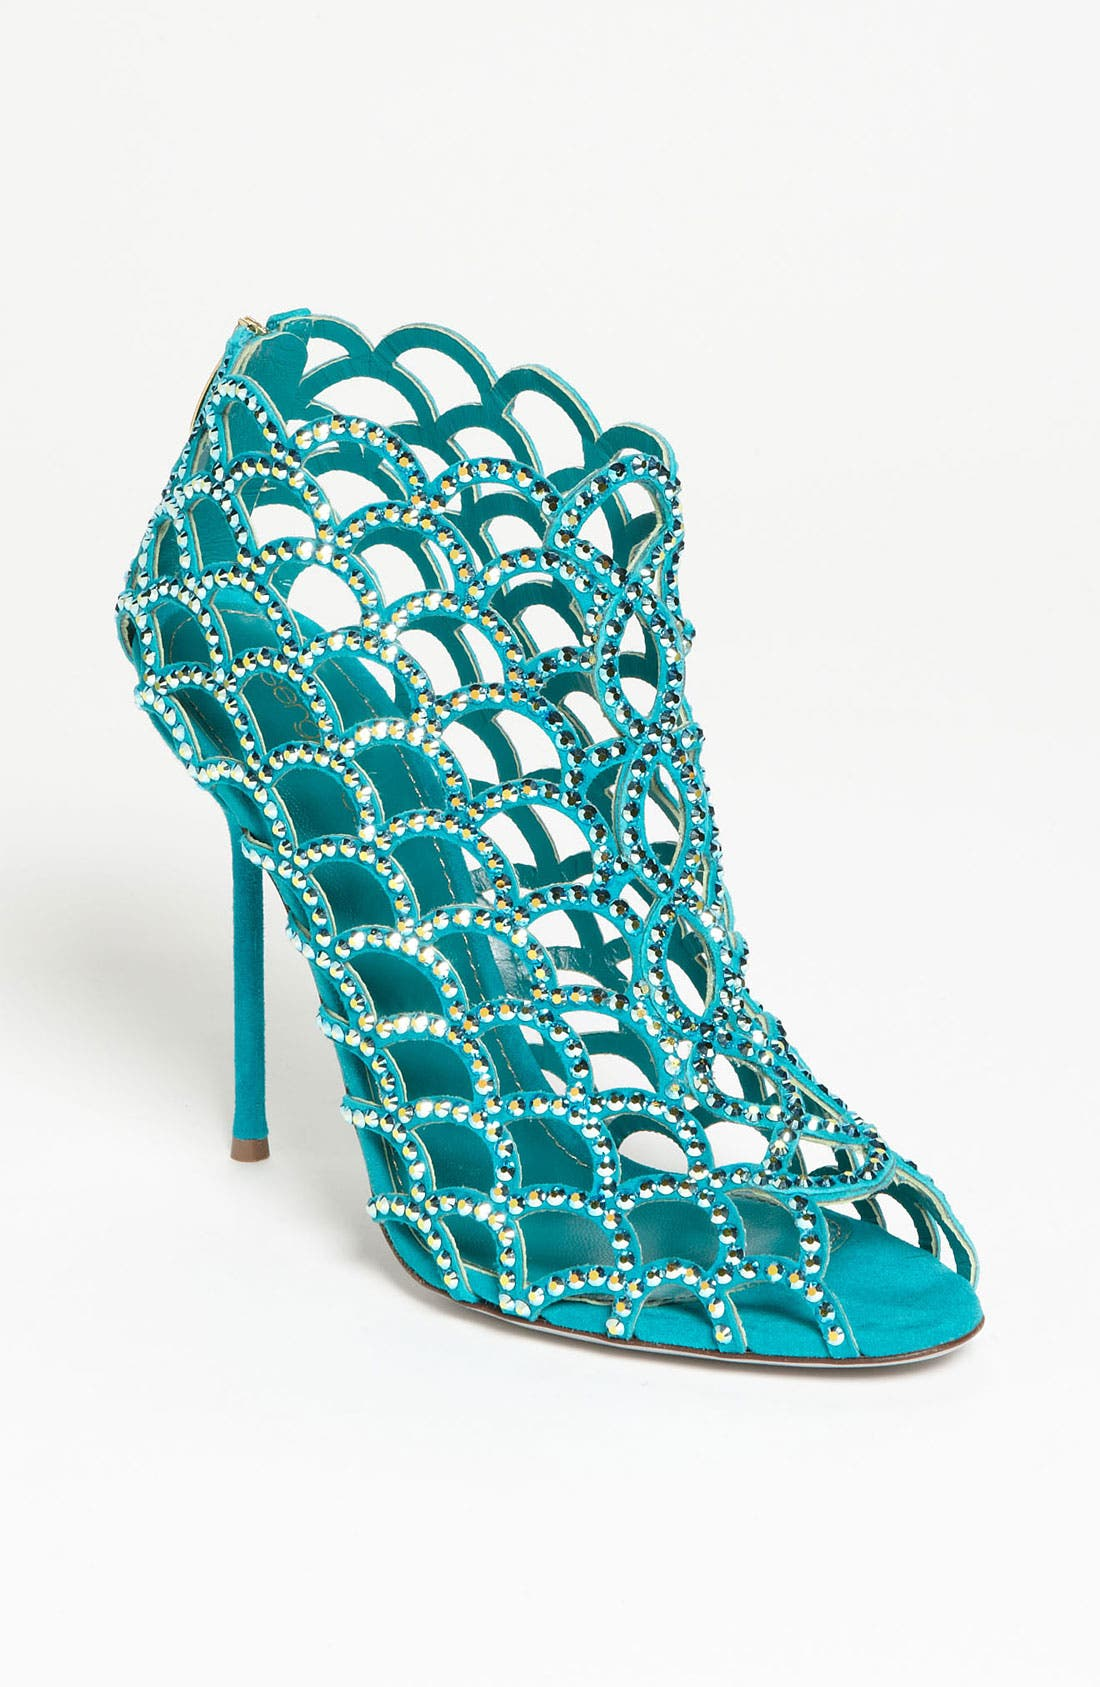 Main Image - Sergio Rossi 'Mermaid' Caged Sandal